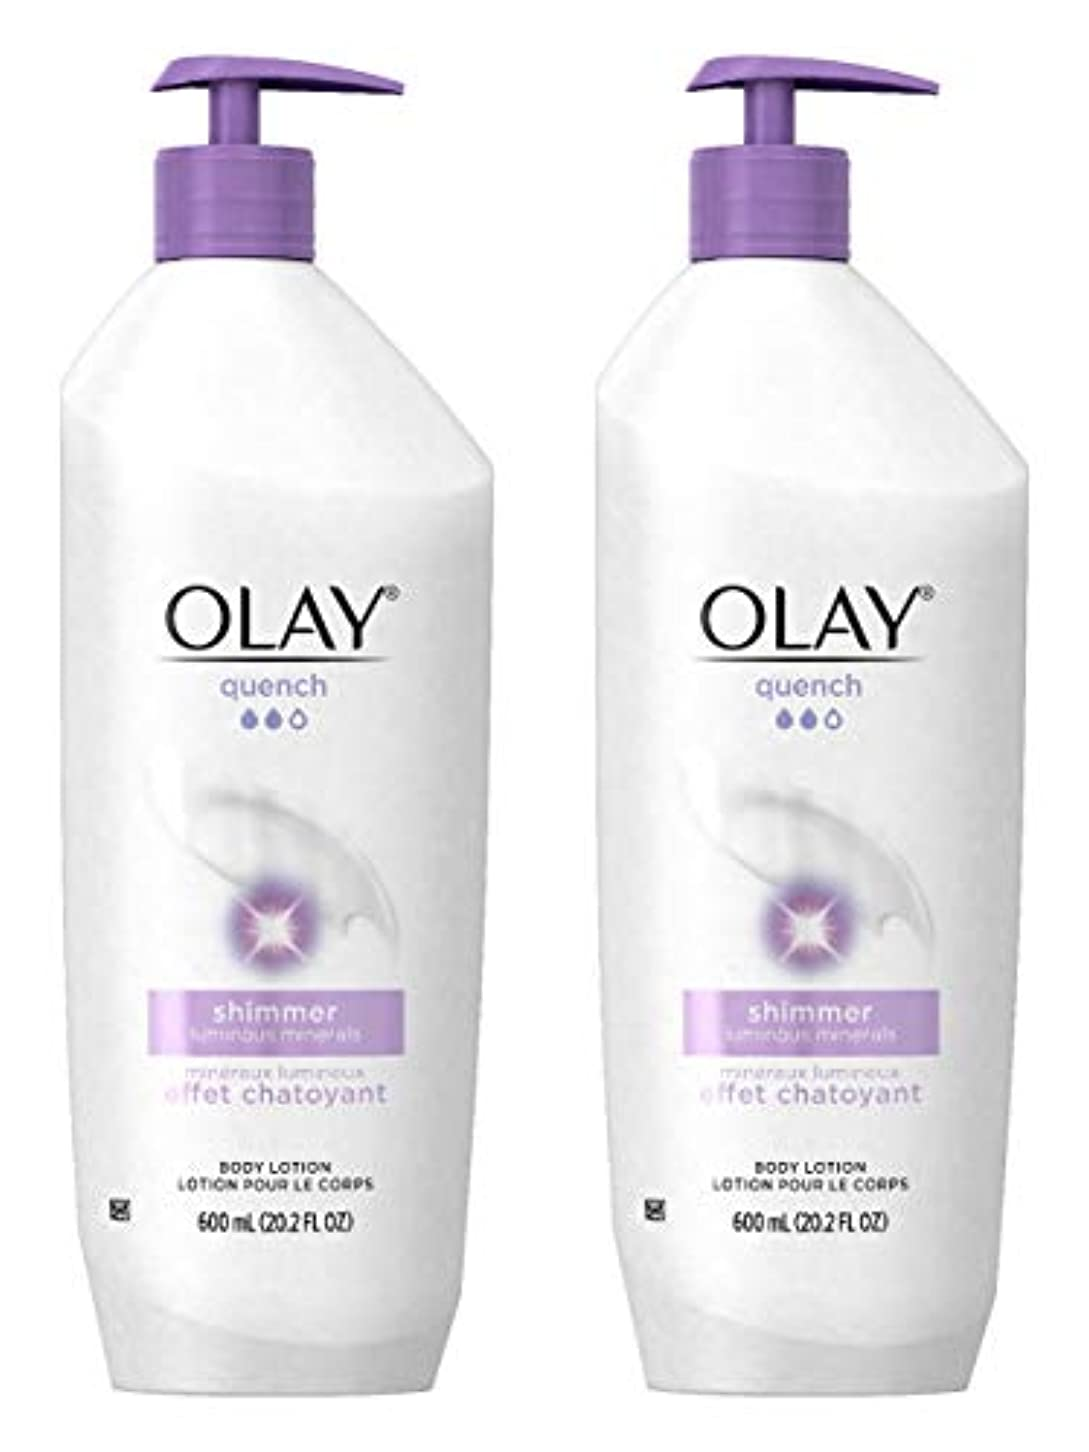 マイクロプロセッサ光沢のあるパートナーOlay Quench Daily Lotion Plus Shimmer Body Lotion 20.2 Fl Oz (Pack of 2) by Olay [並行輸入品]